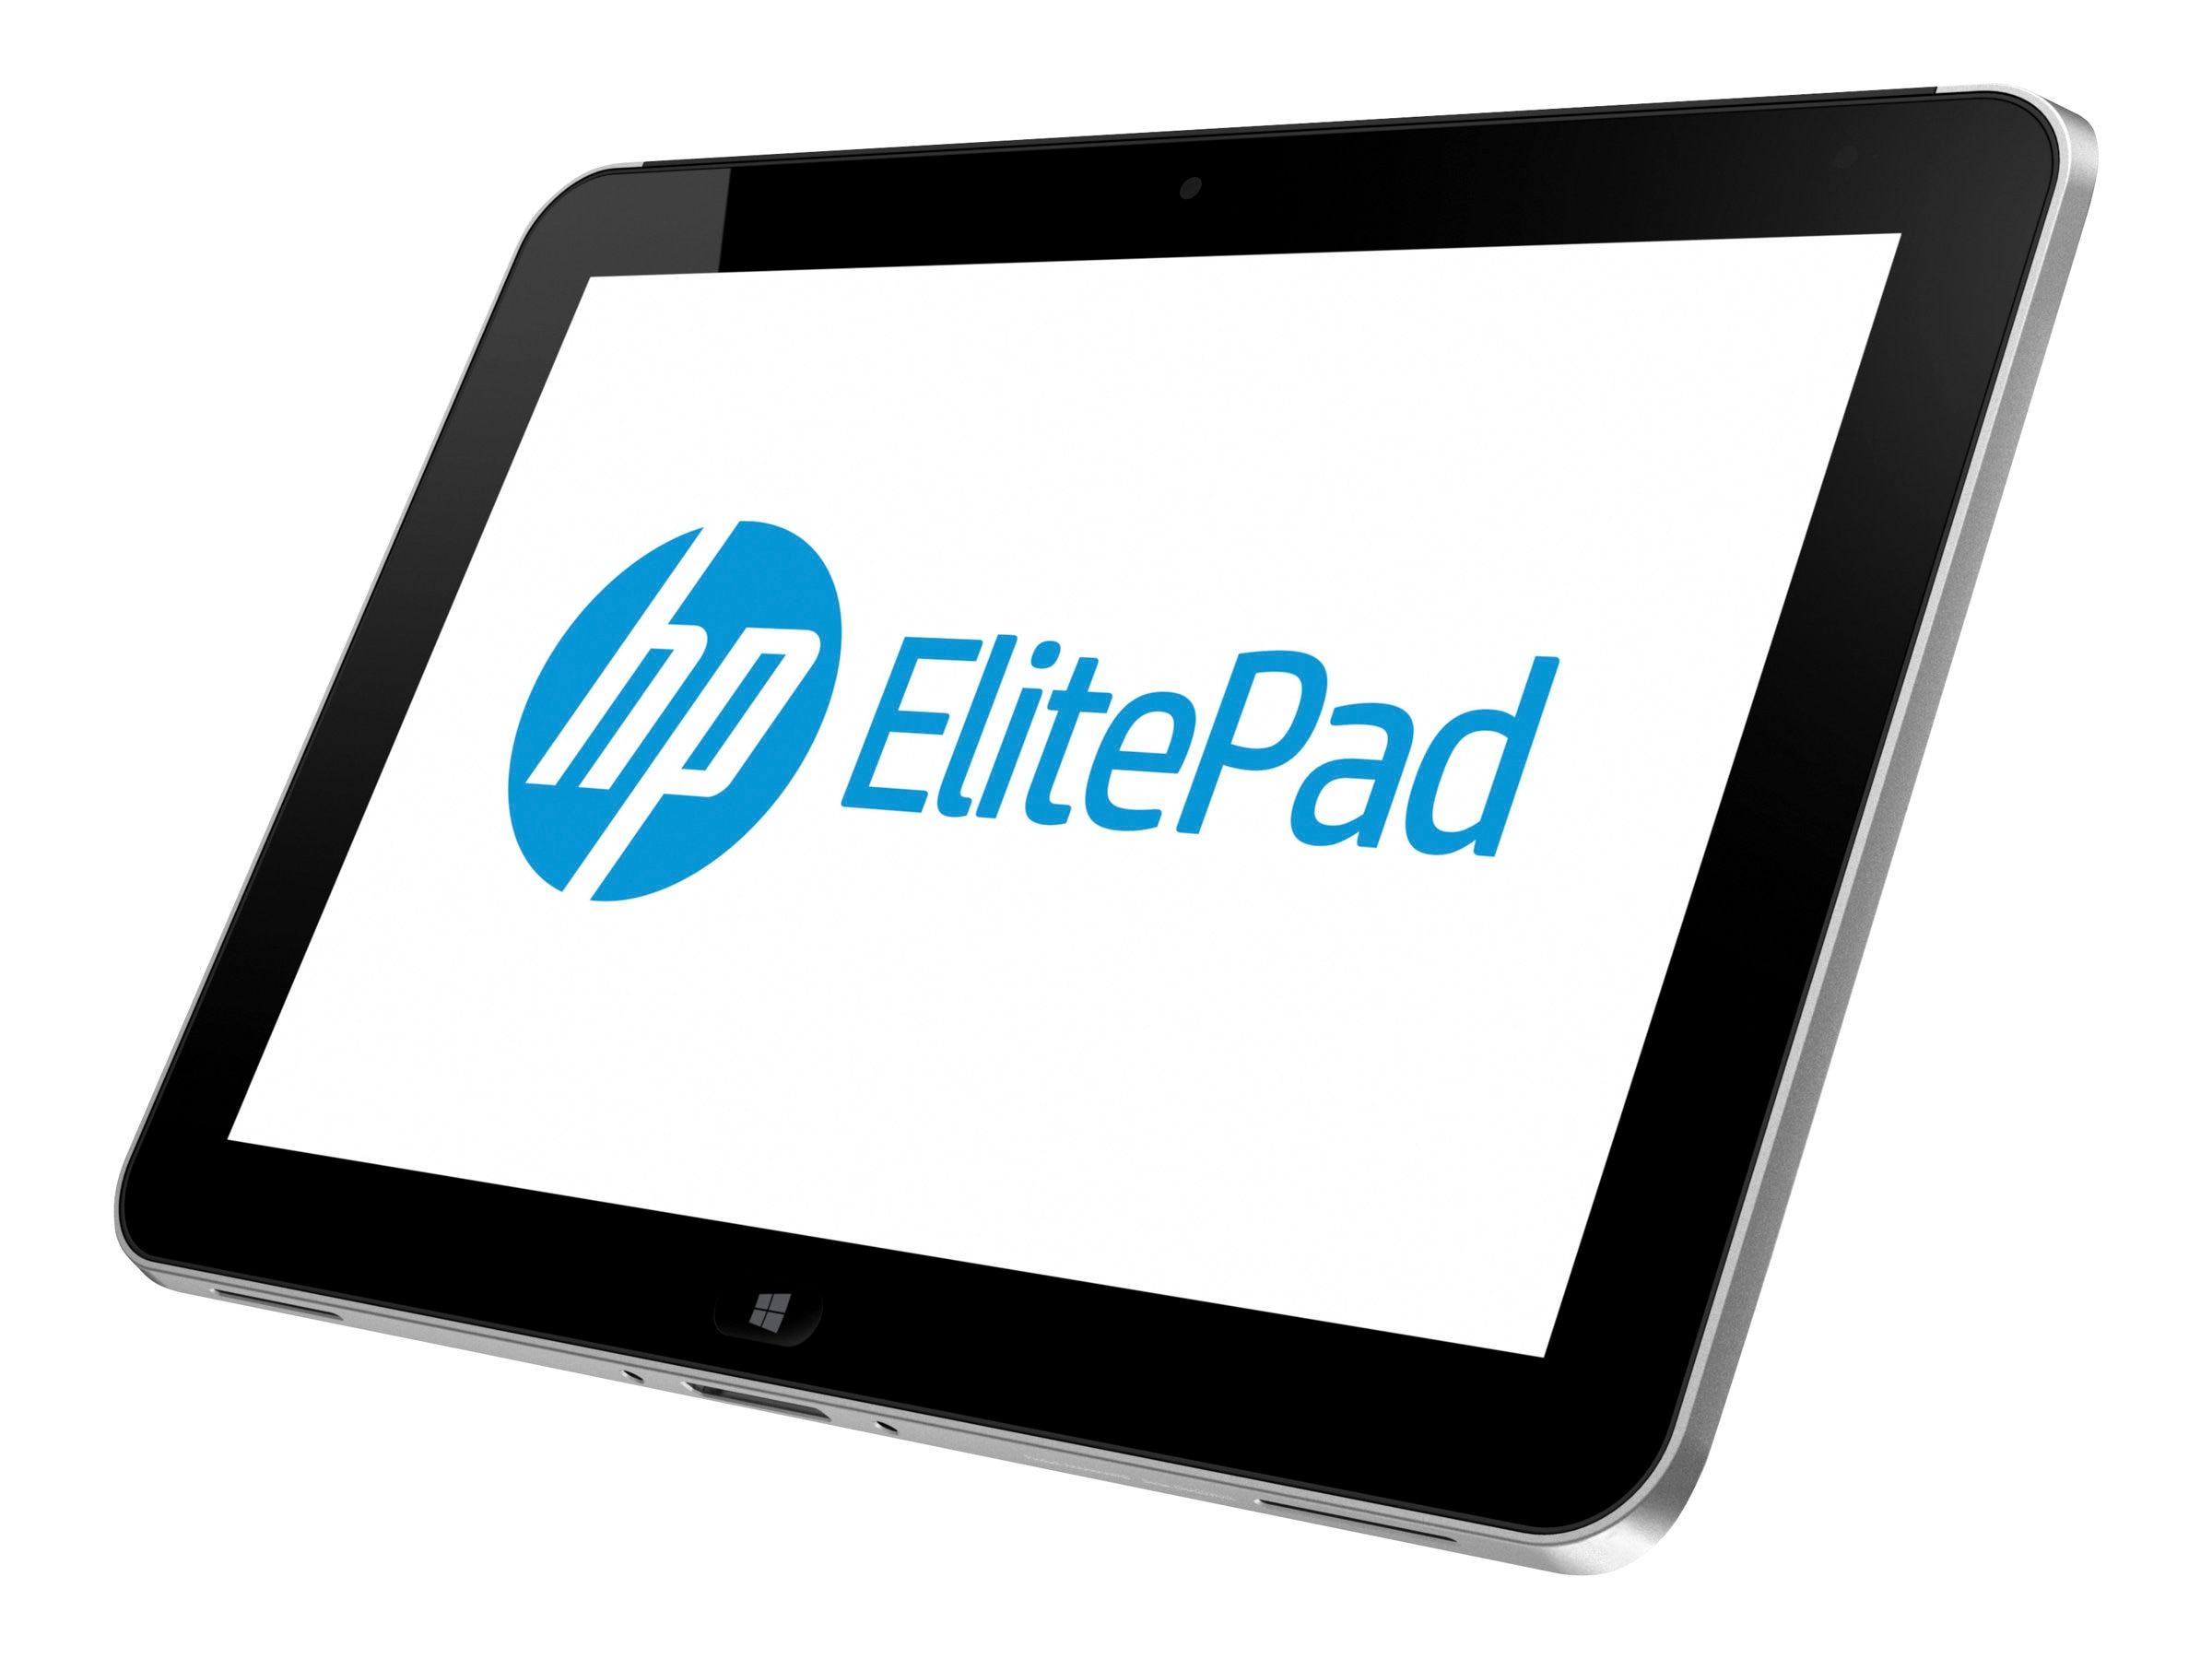 HP ElitePad 900 1.8GHz processor